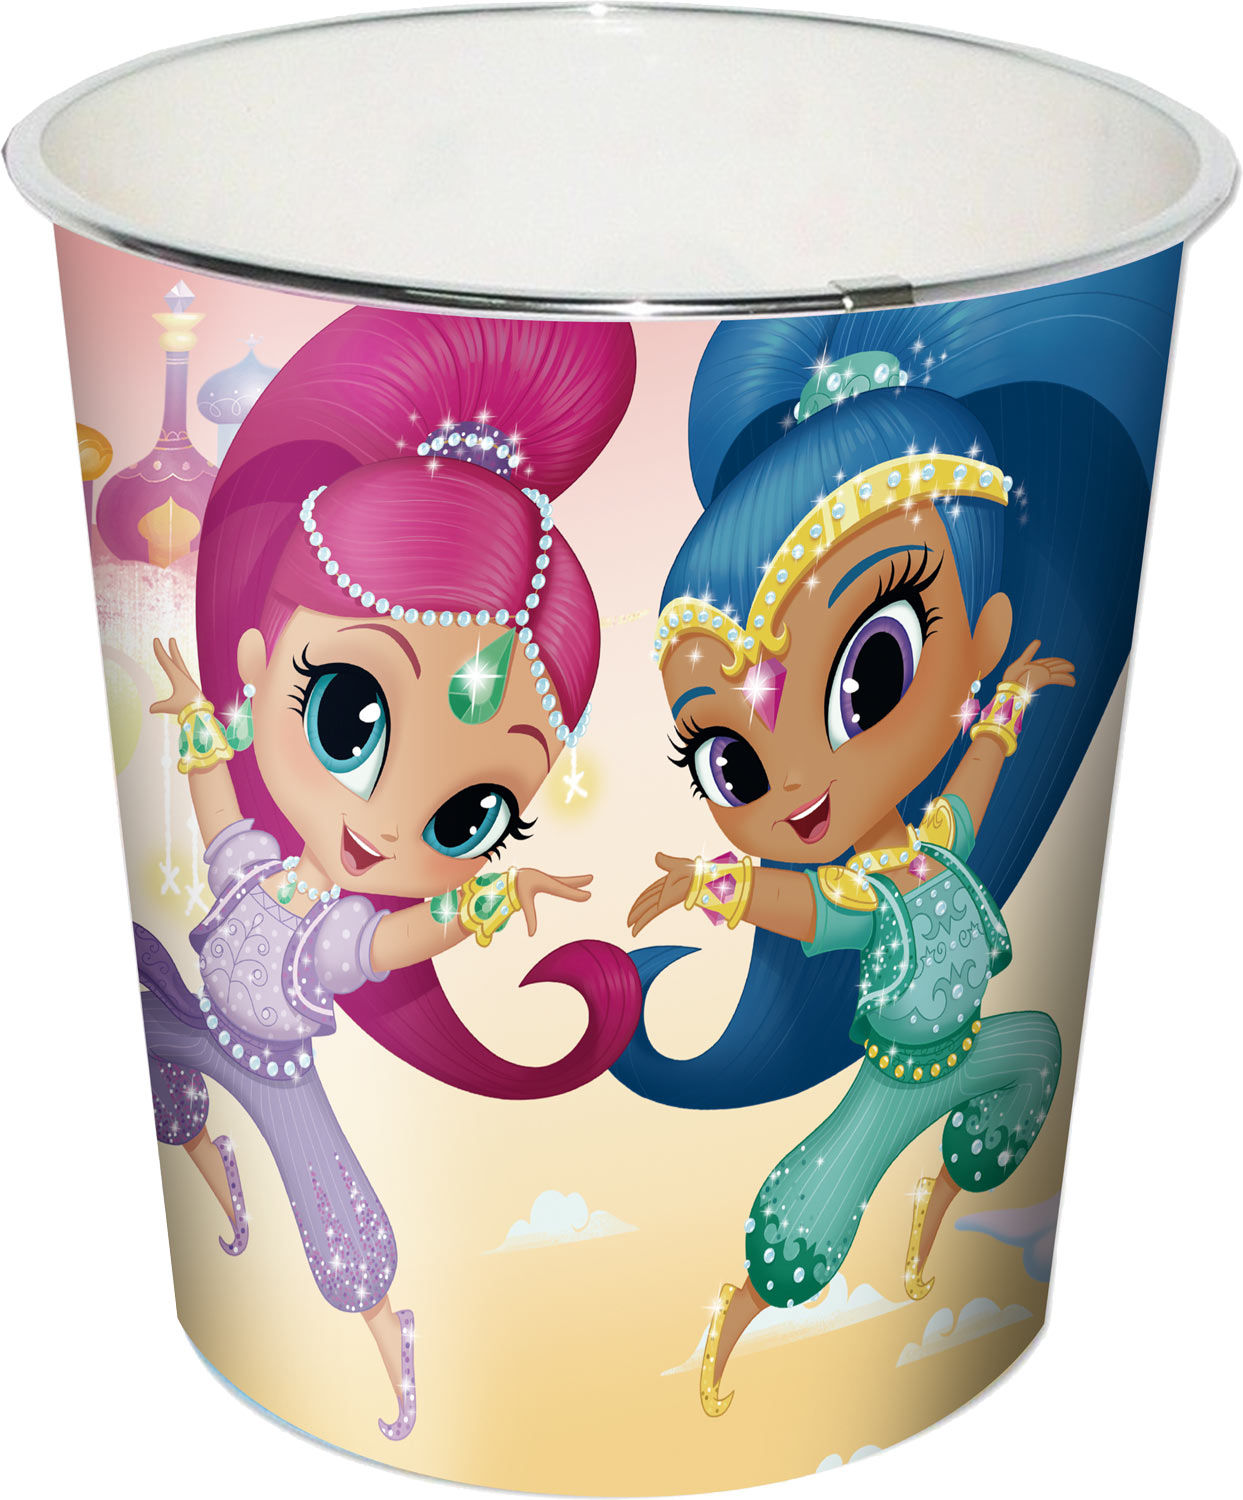 Shimmer and Shine Kids Bedroom Set Blanket Cushion and Bin – image 3